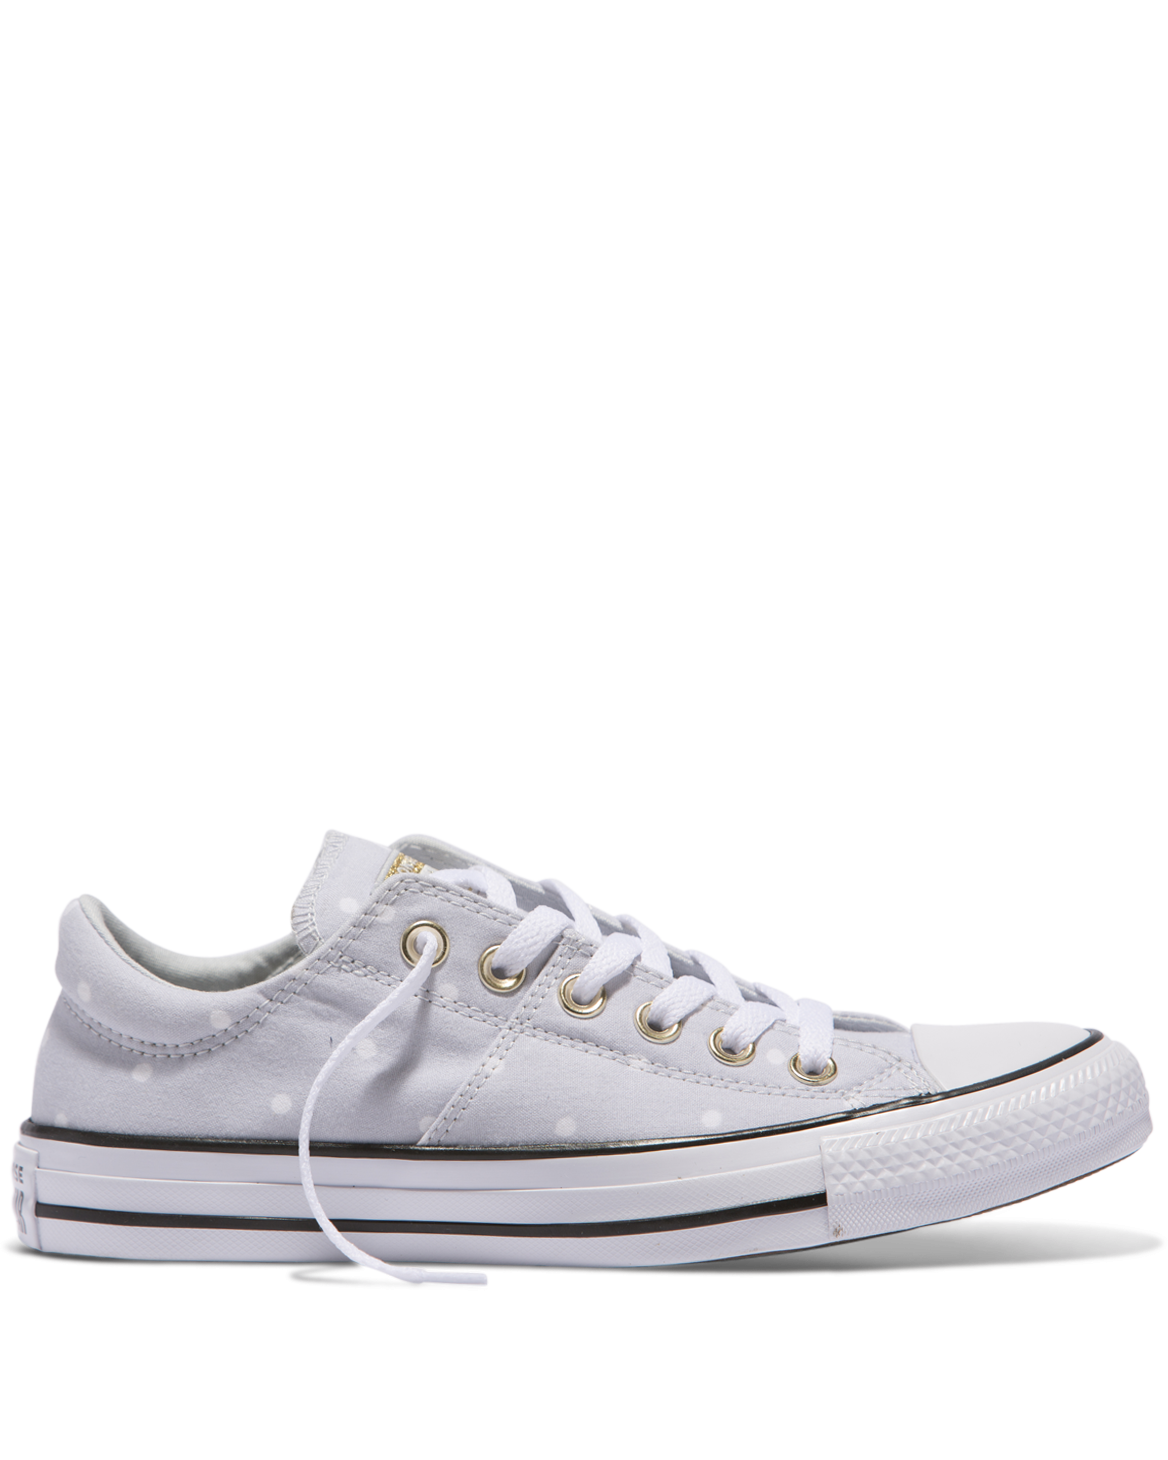 458a5ea5200dc3 Converse Chuck Taylor Madison Mini Dots Low Top - Pure Platinum is a low  profile